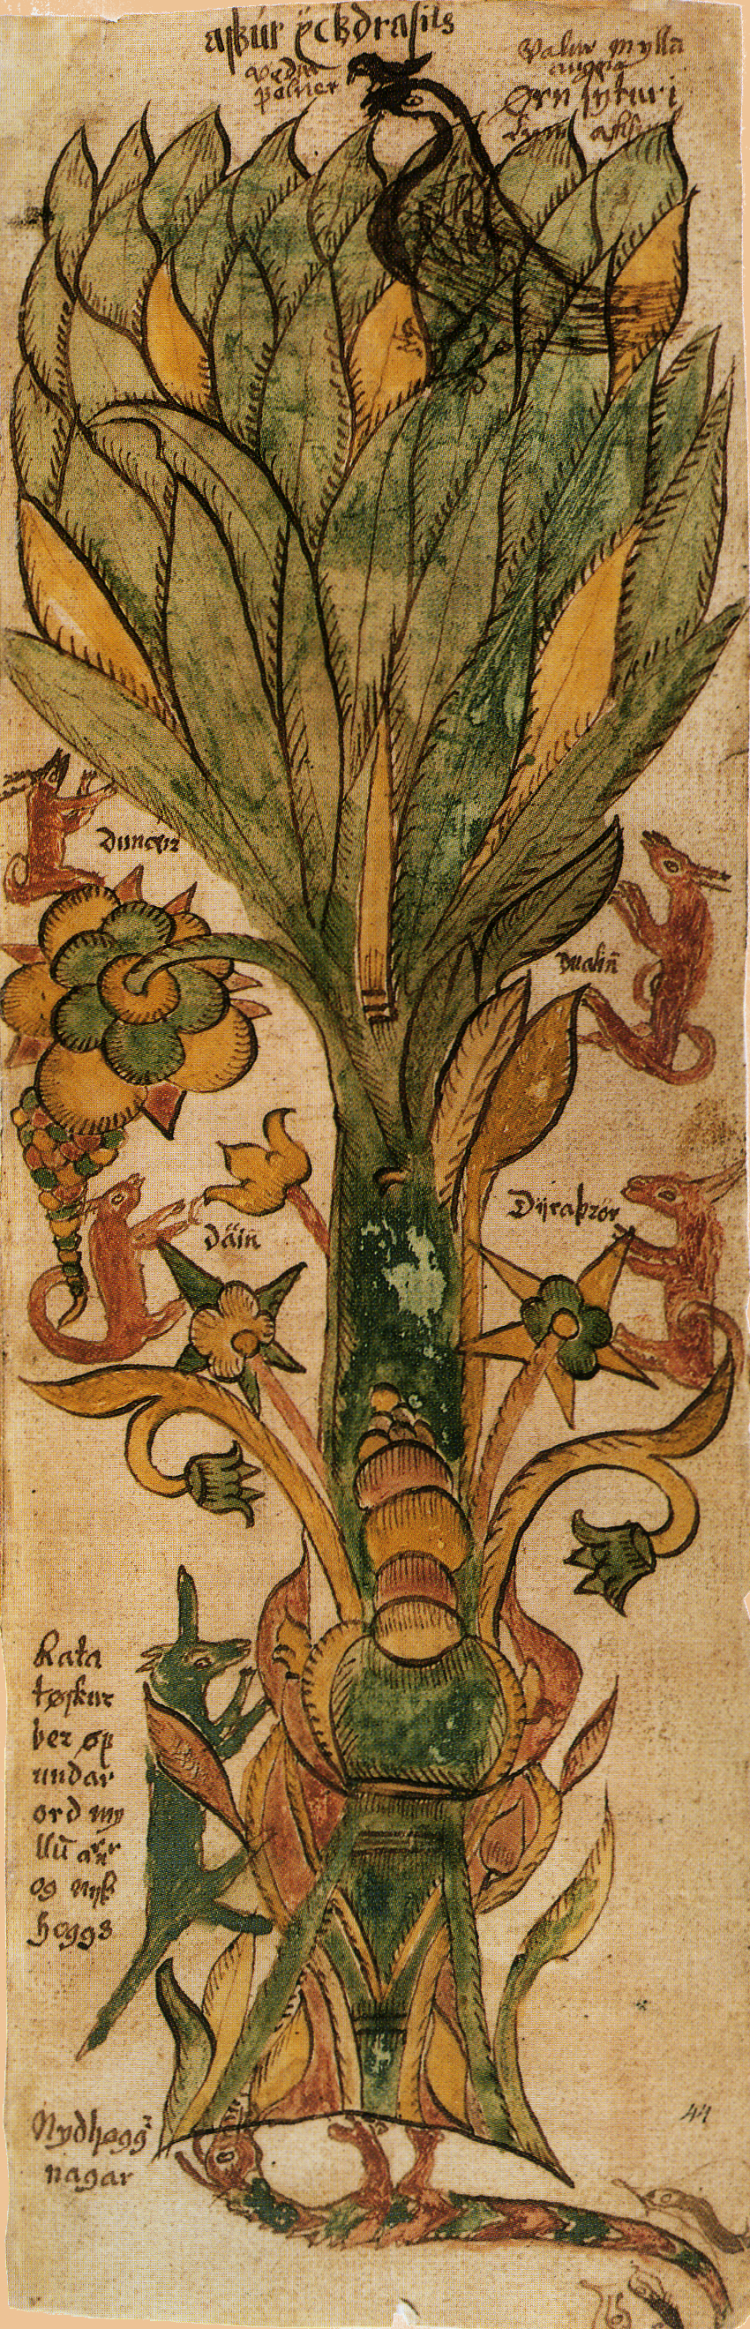 In Norse mythology, the sacred tree Yggdrasil connects the nine worlds